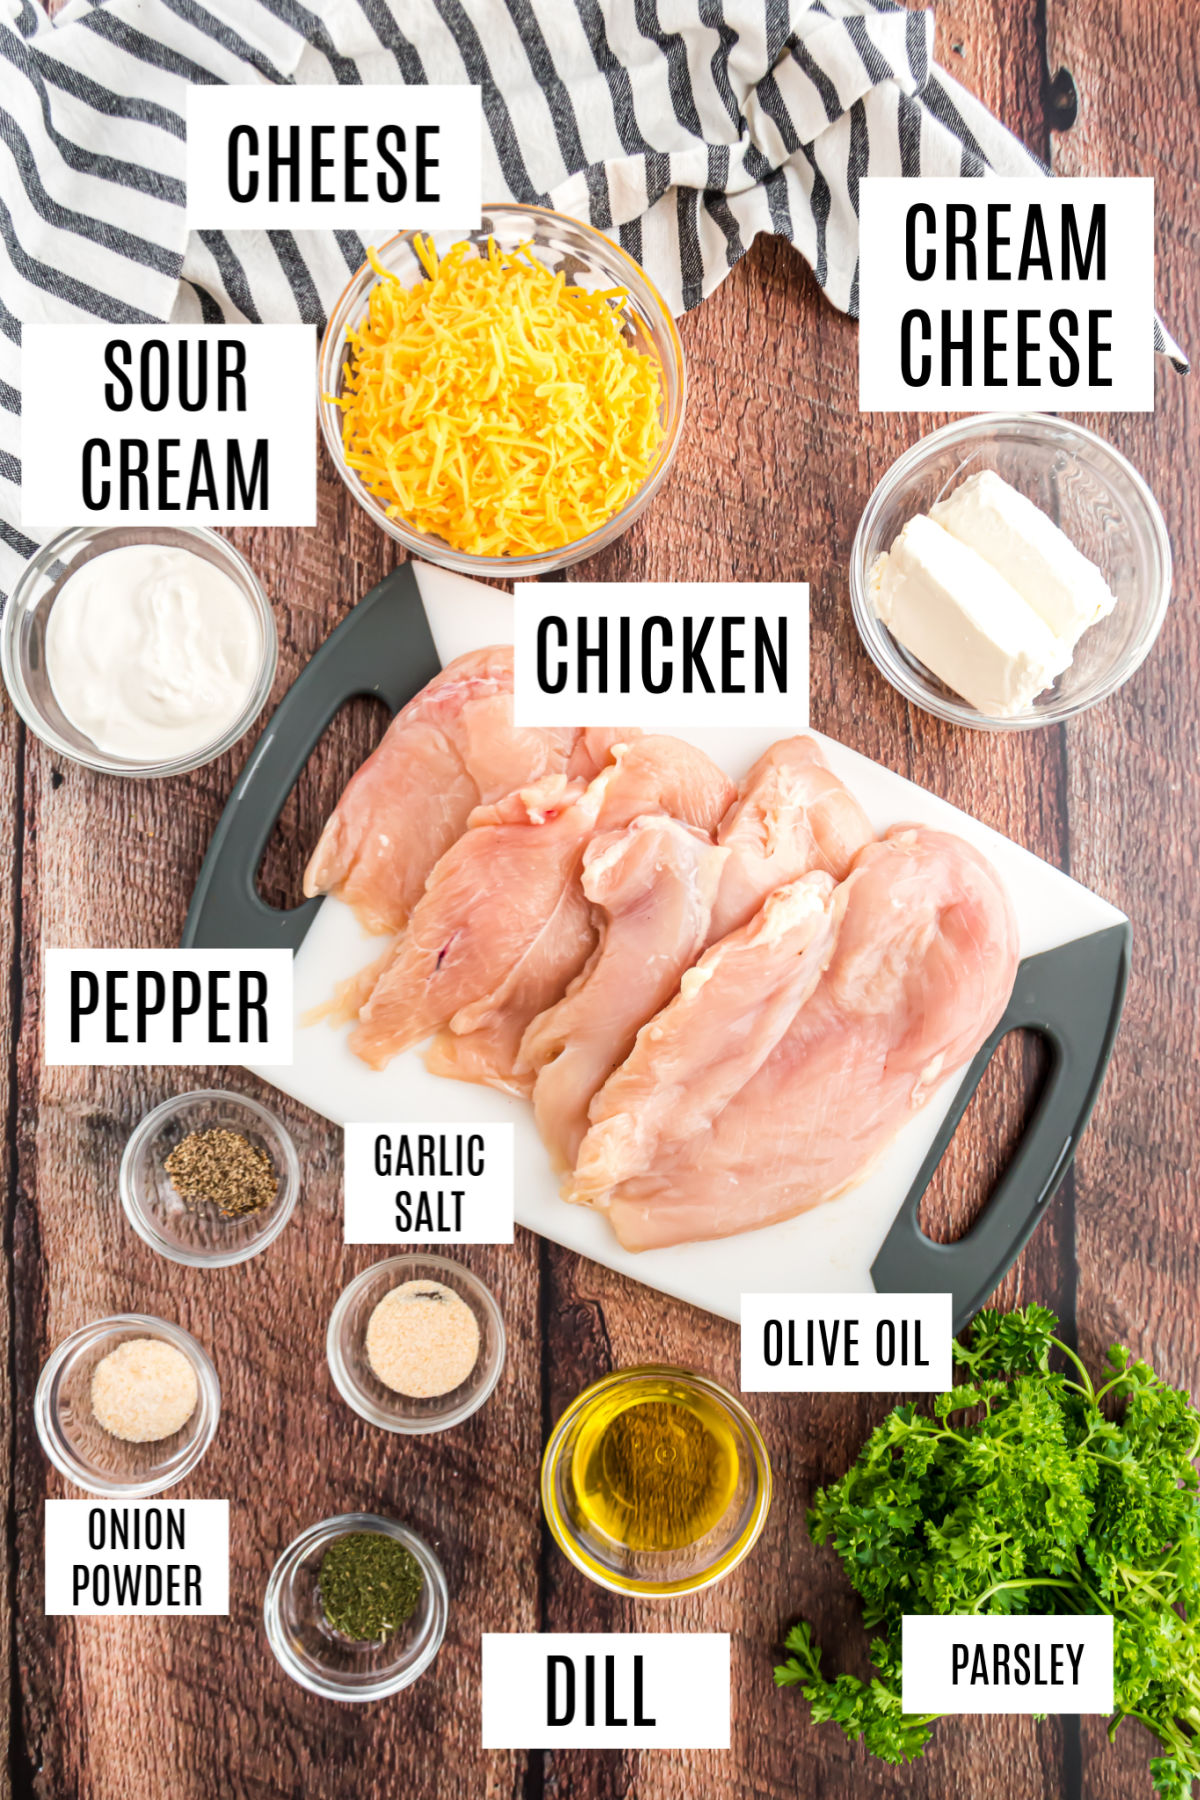 Ingredients needed for baked ranch chicken on wooden counter.